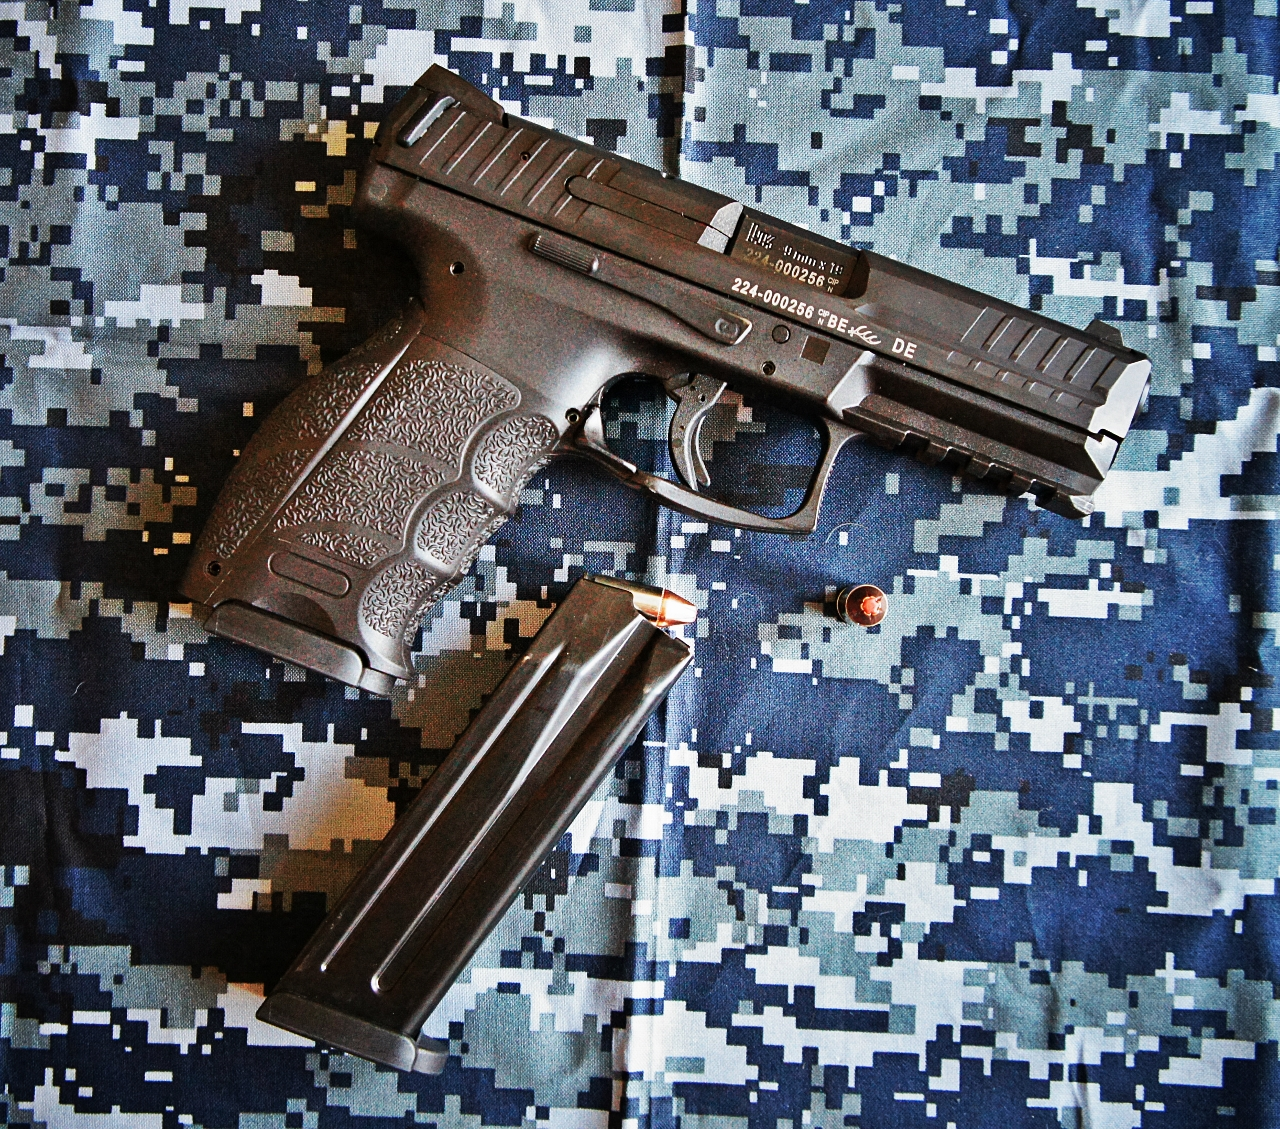 HK VP9 with Hornady Critical Defense